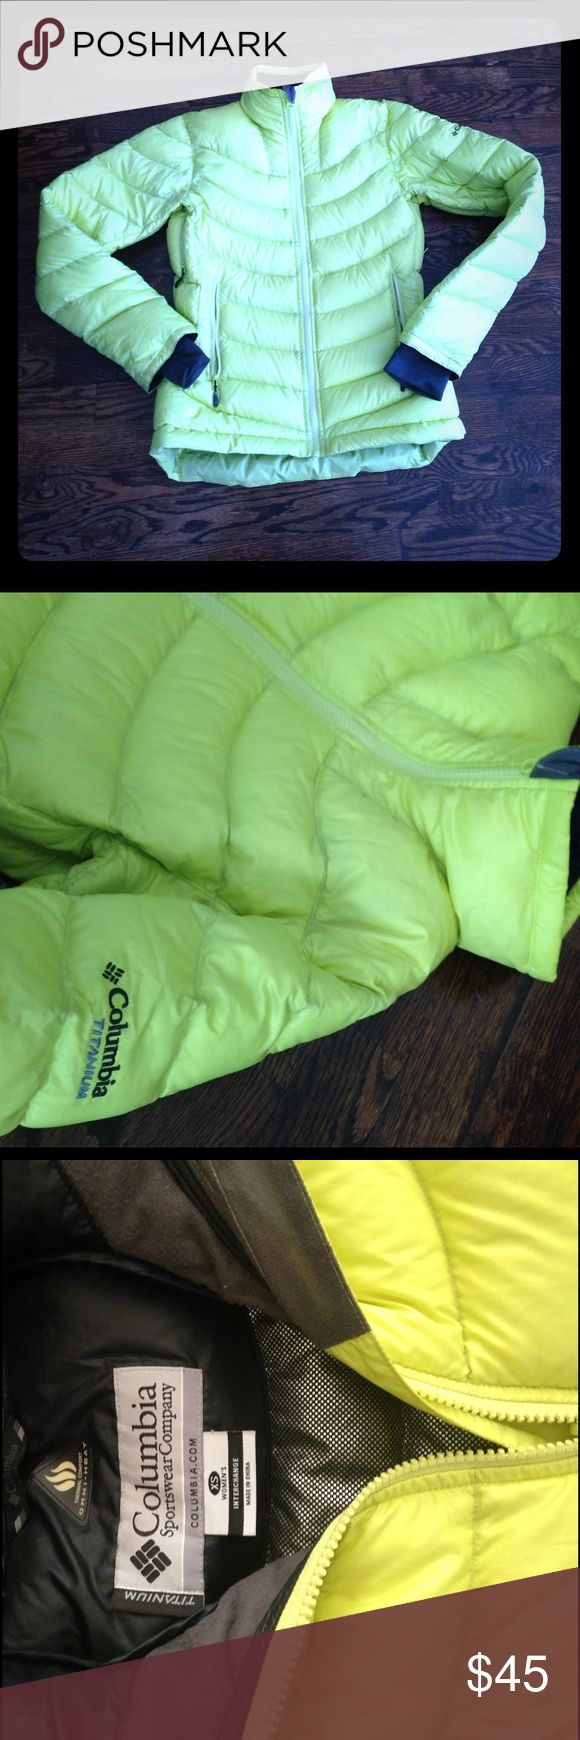 Columbia Neon Jacket Thermal Comfort Omni-Heat XS This neon interchange jacket will zip up into a Columbia interchange jacket. Has wear on sleeves but should come out in wash. Columbia Jackets & Coats Puffers